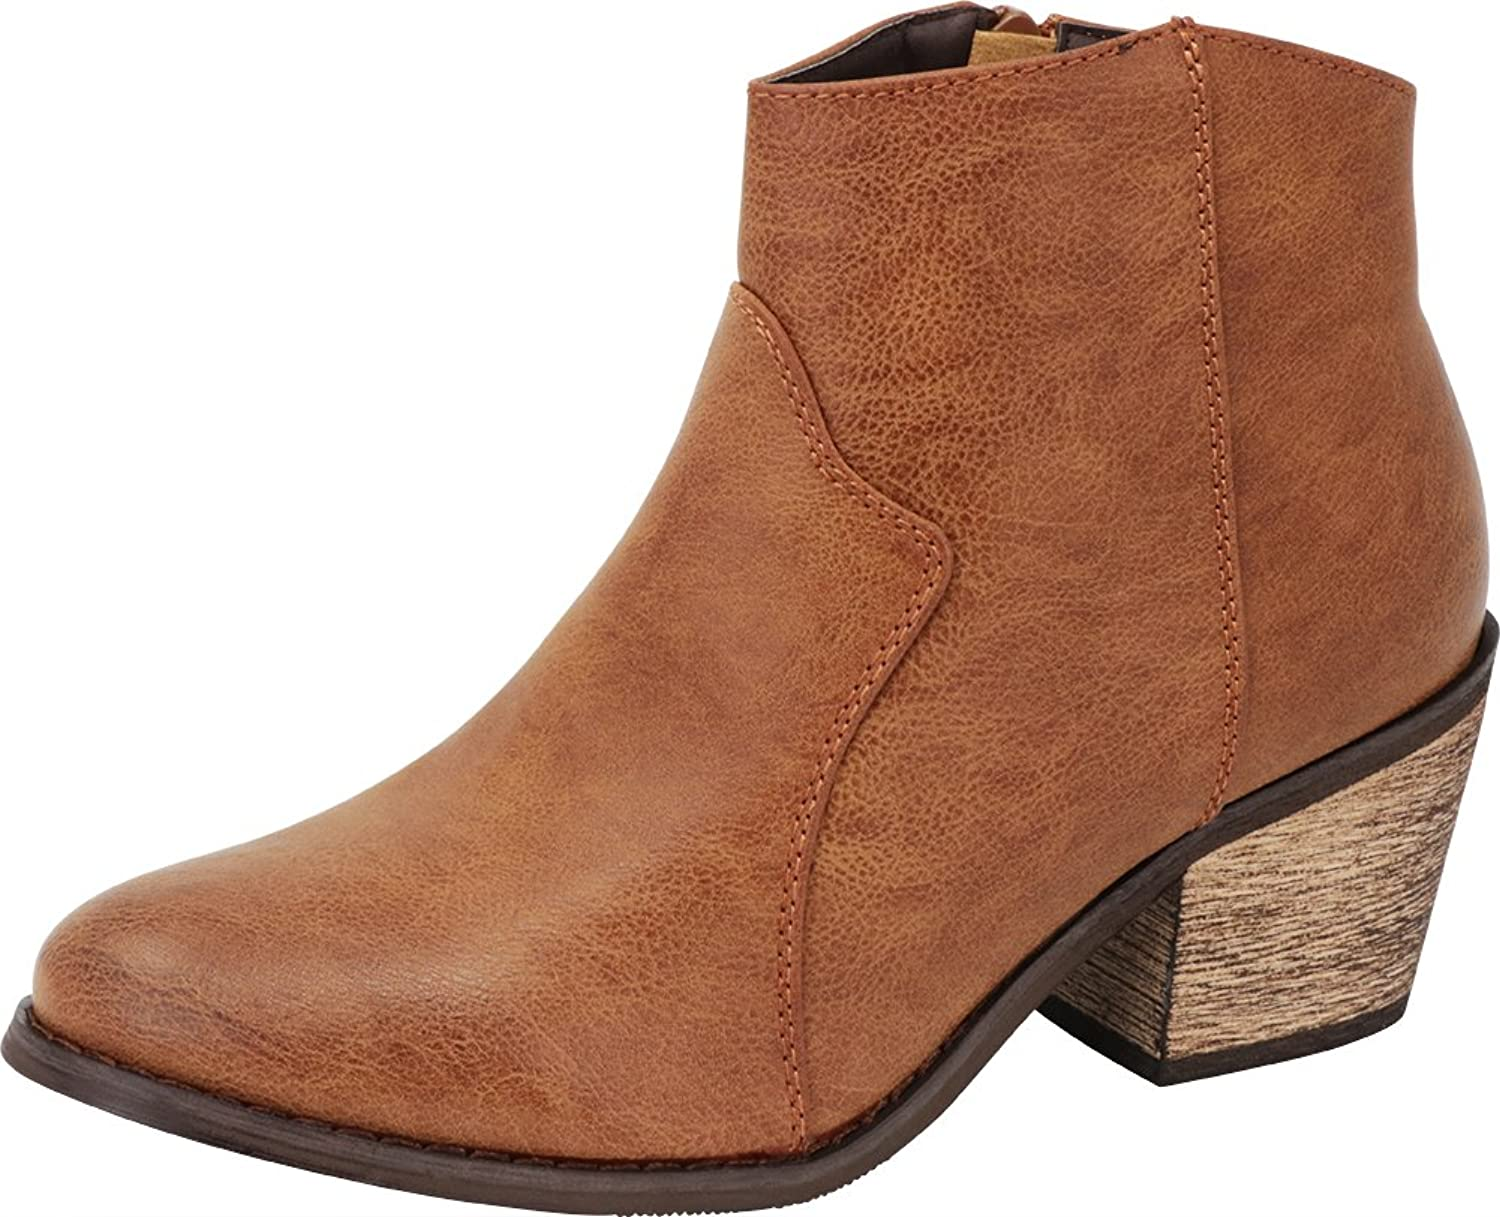 Cambridge Select Women's Closed Toe Western Cowboy Stitched Chunky Stacked Block Heel Ankle Bootie